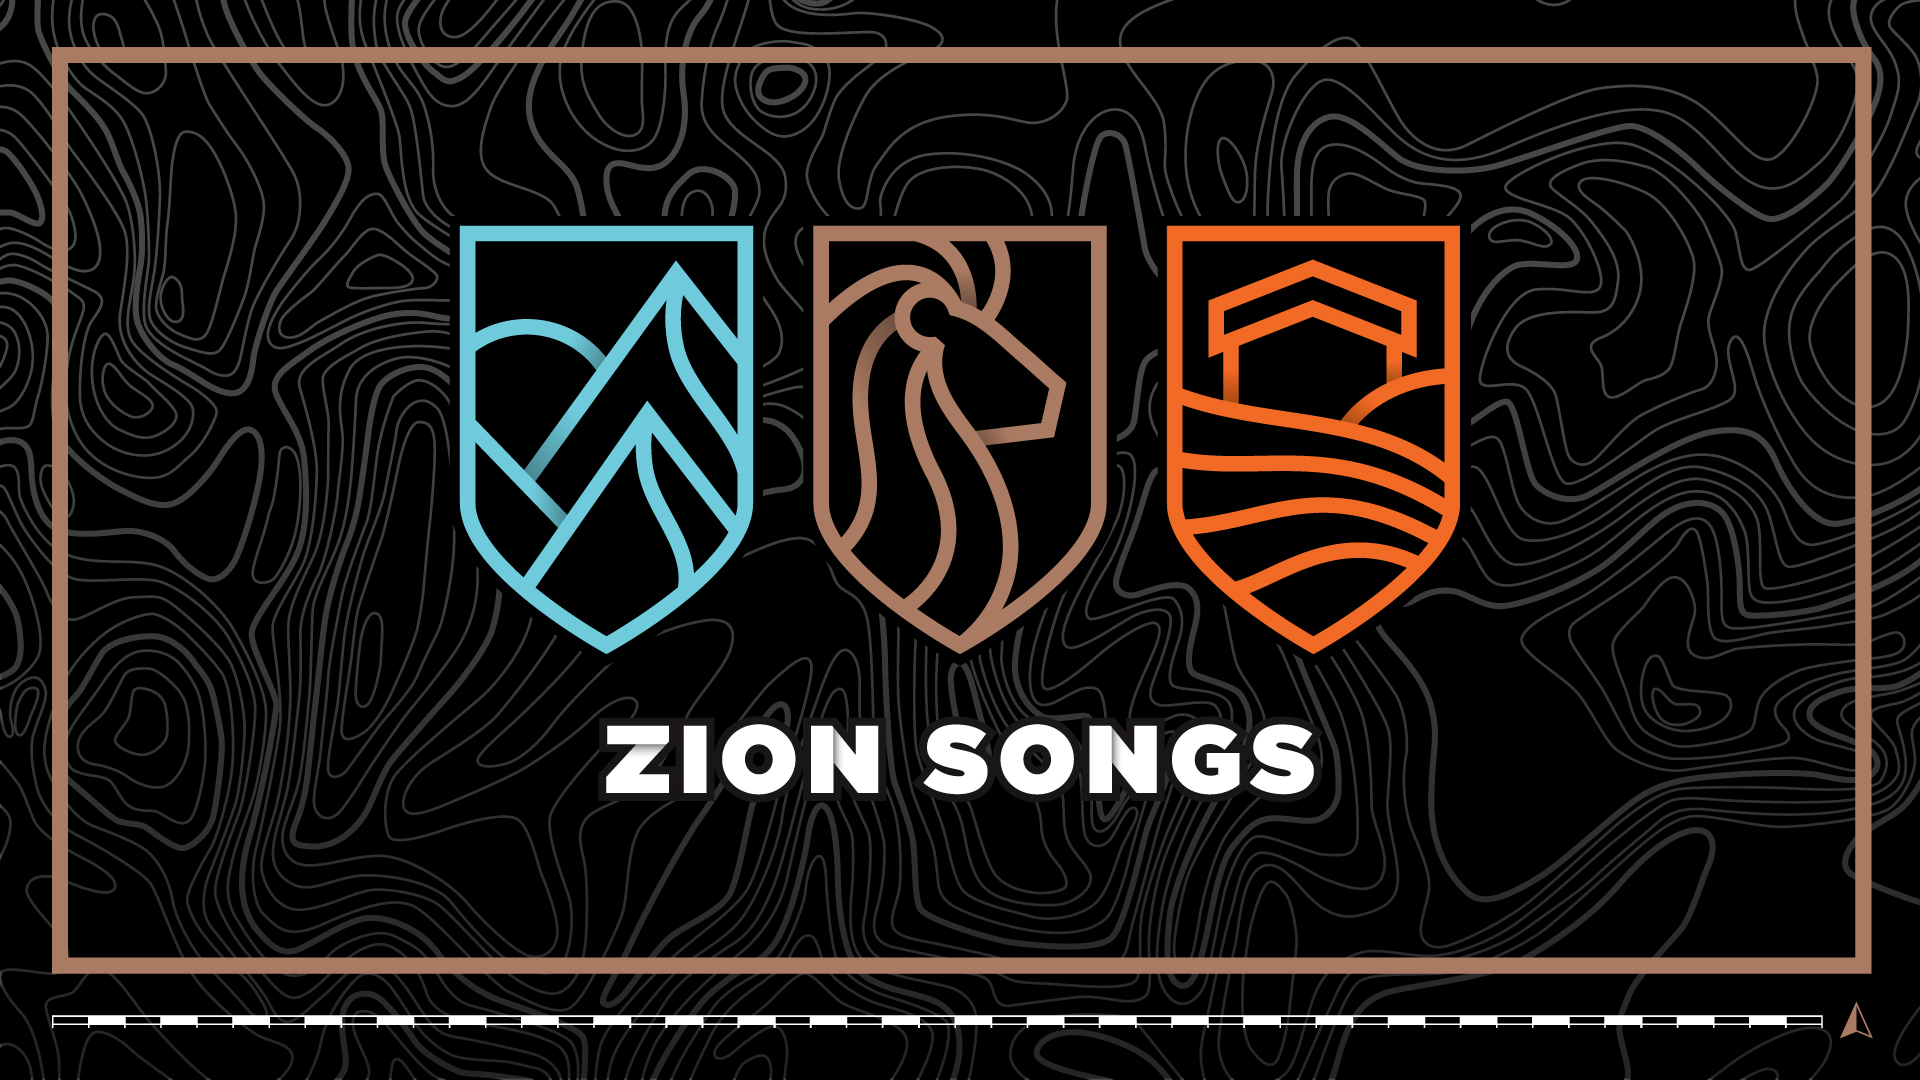 Zion Songs